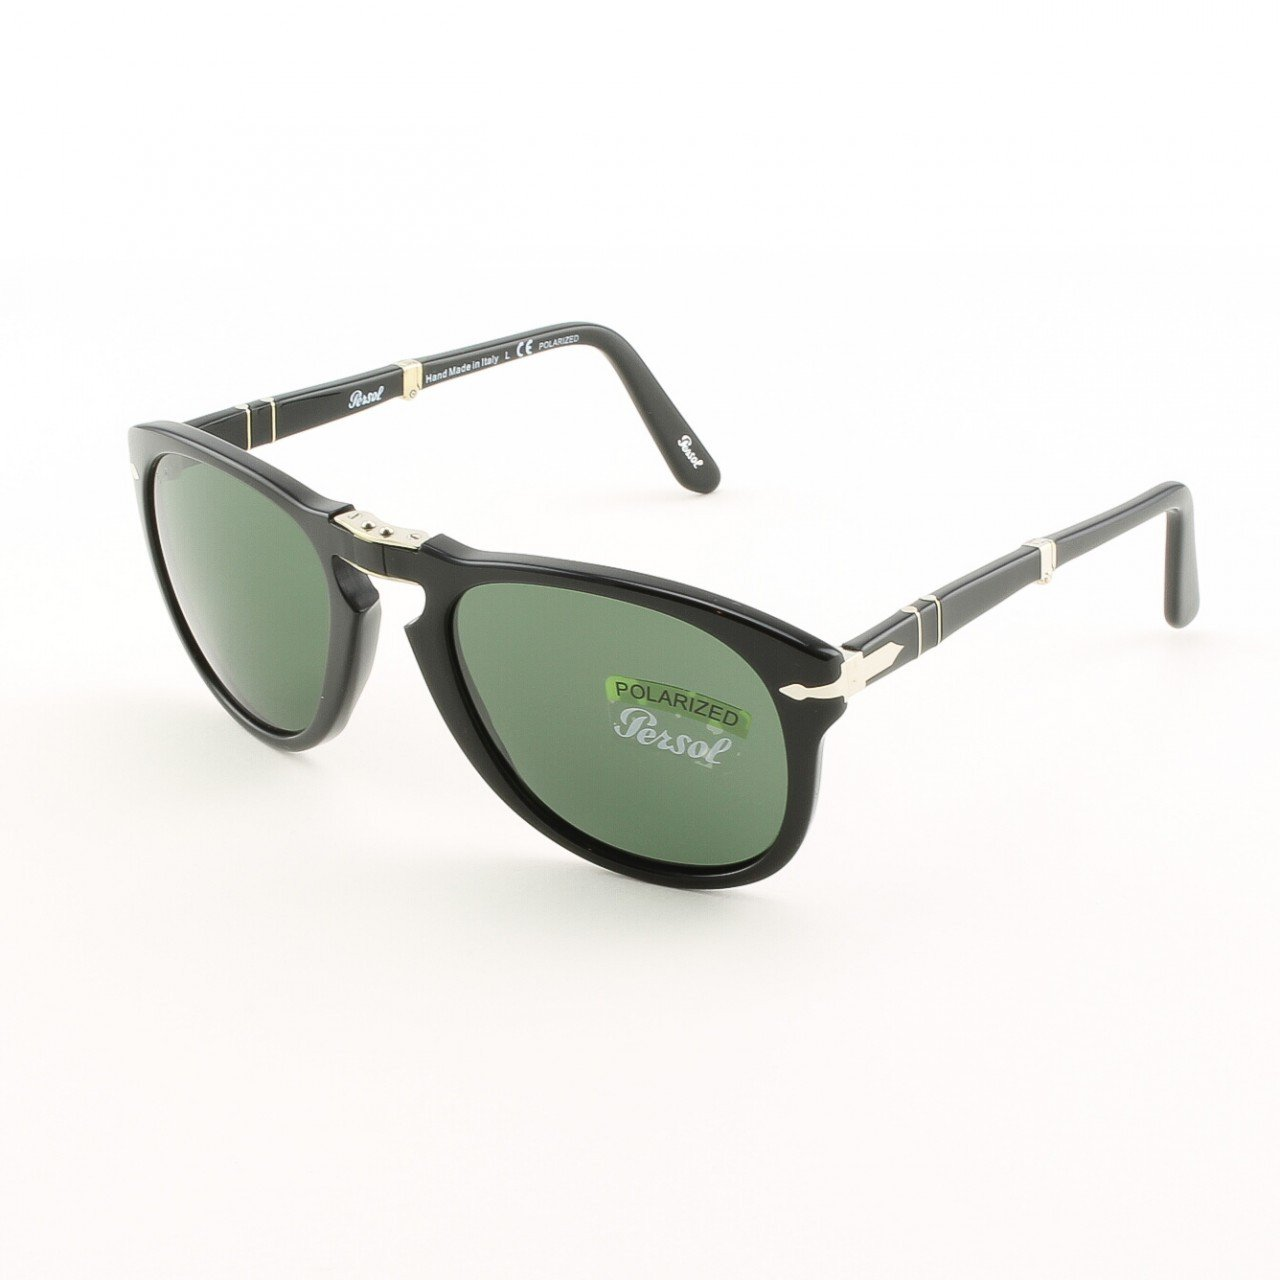 Persol PO0714 95/58 54mm Black Sunglasses with Grey Green Polarized Lenses